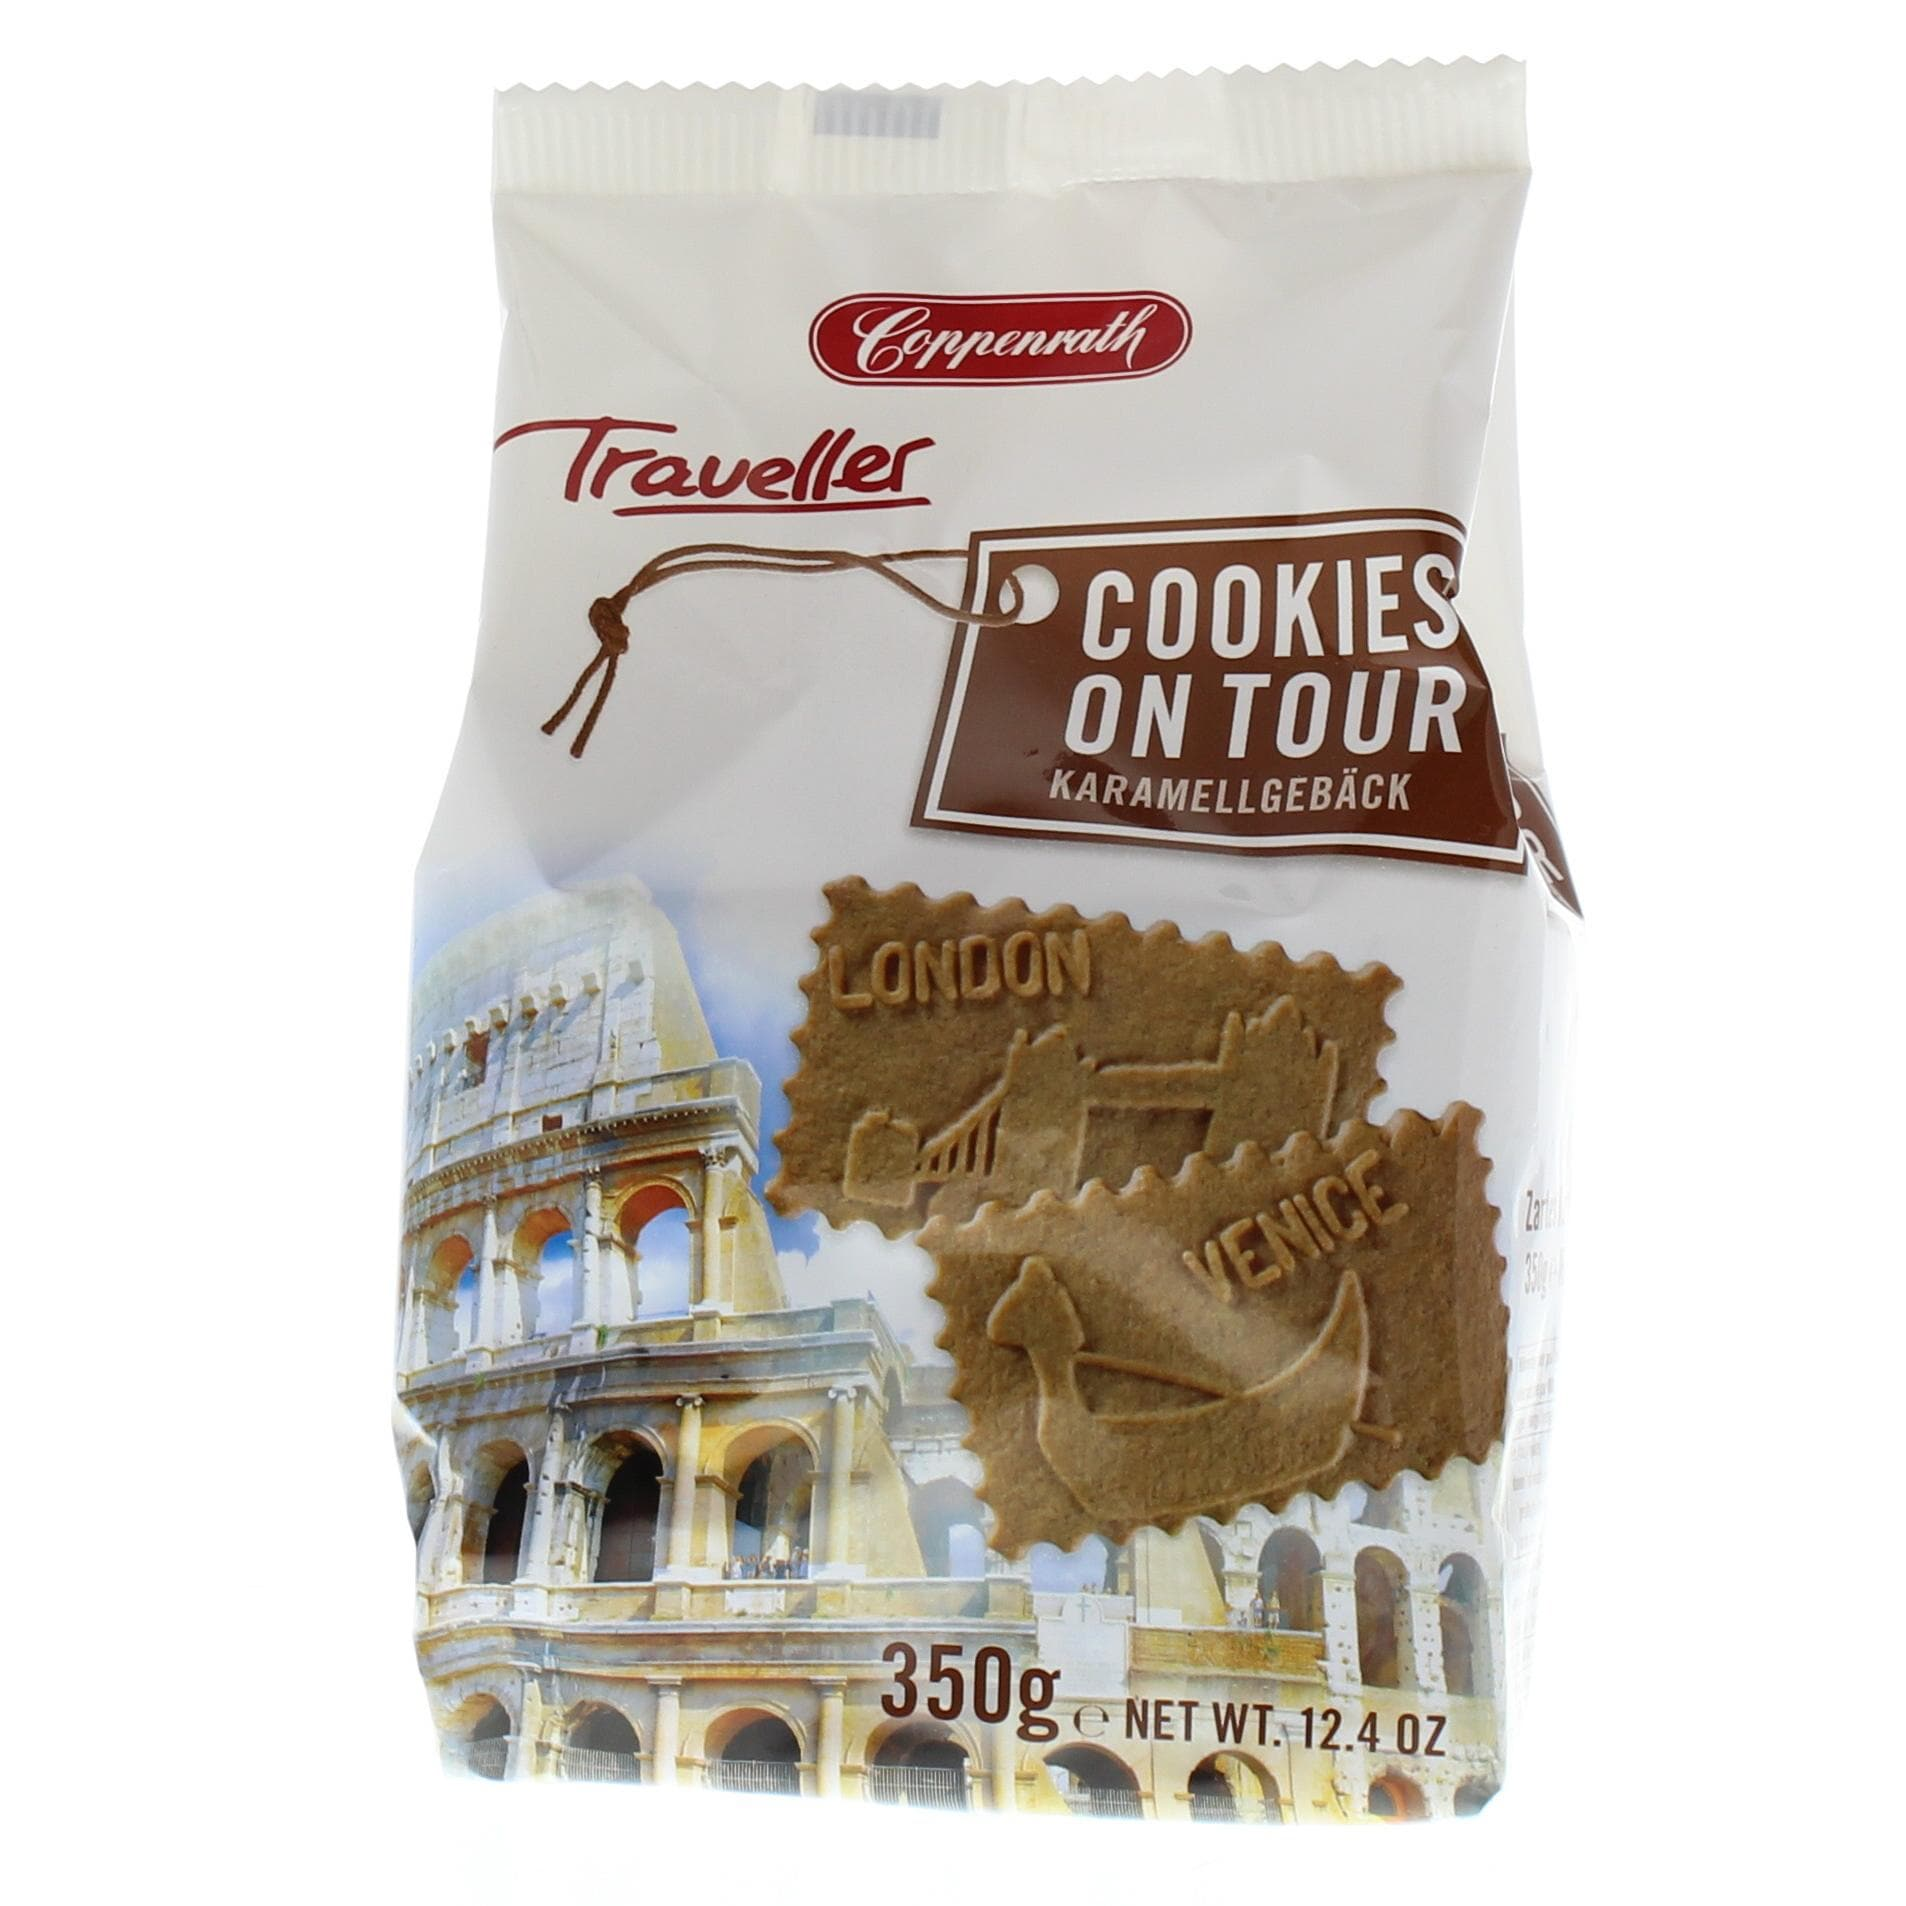 Coppenrath - Cookies on Tour - Karamellgebäck - 350g